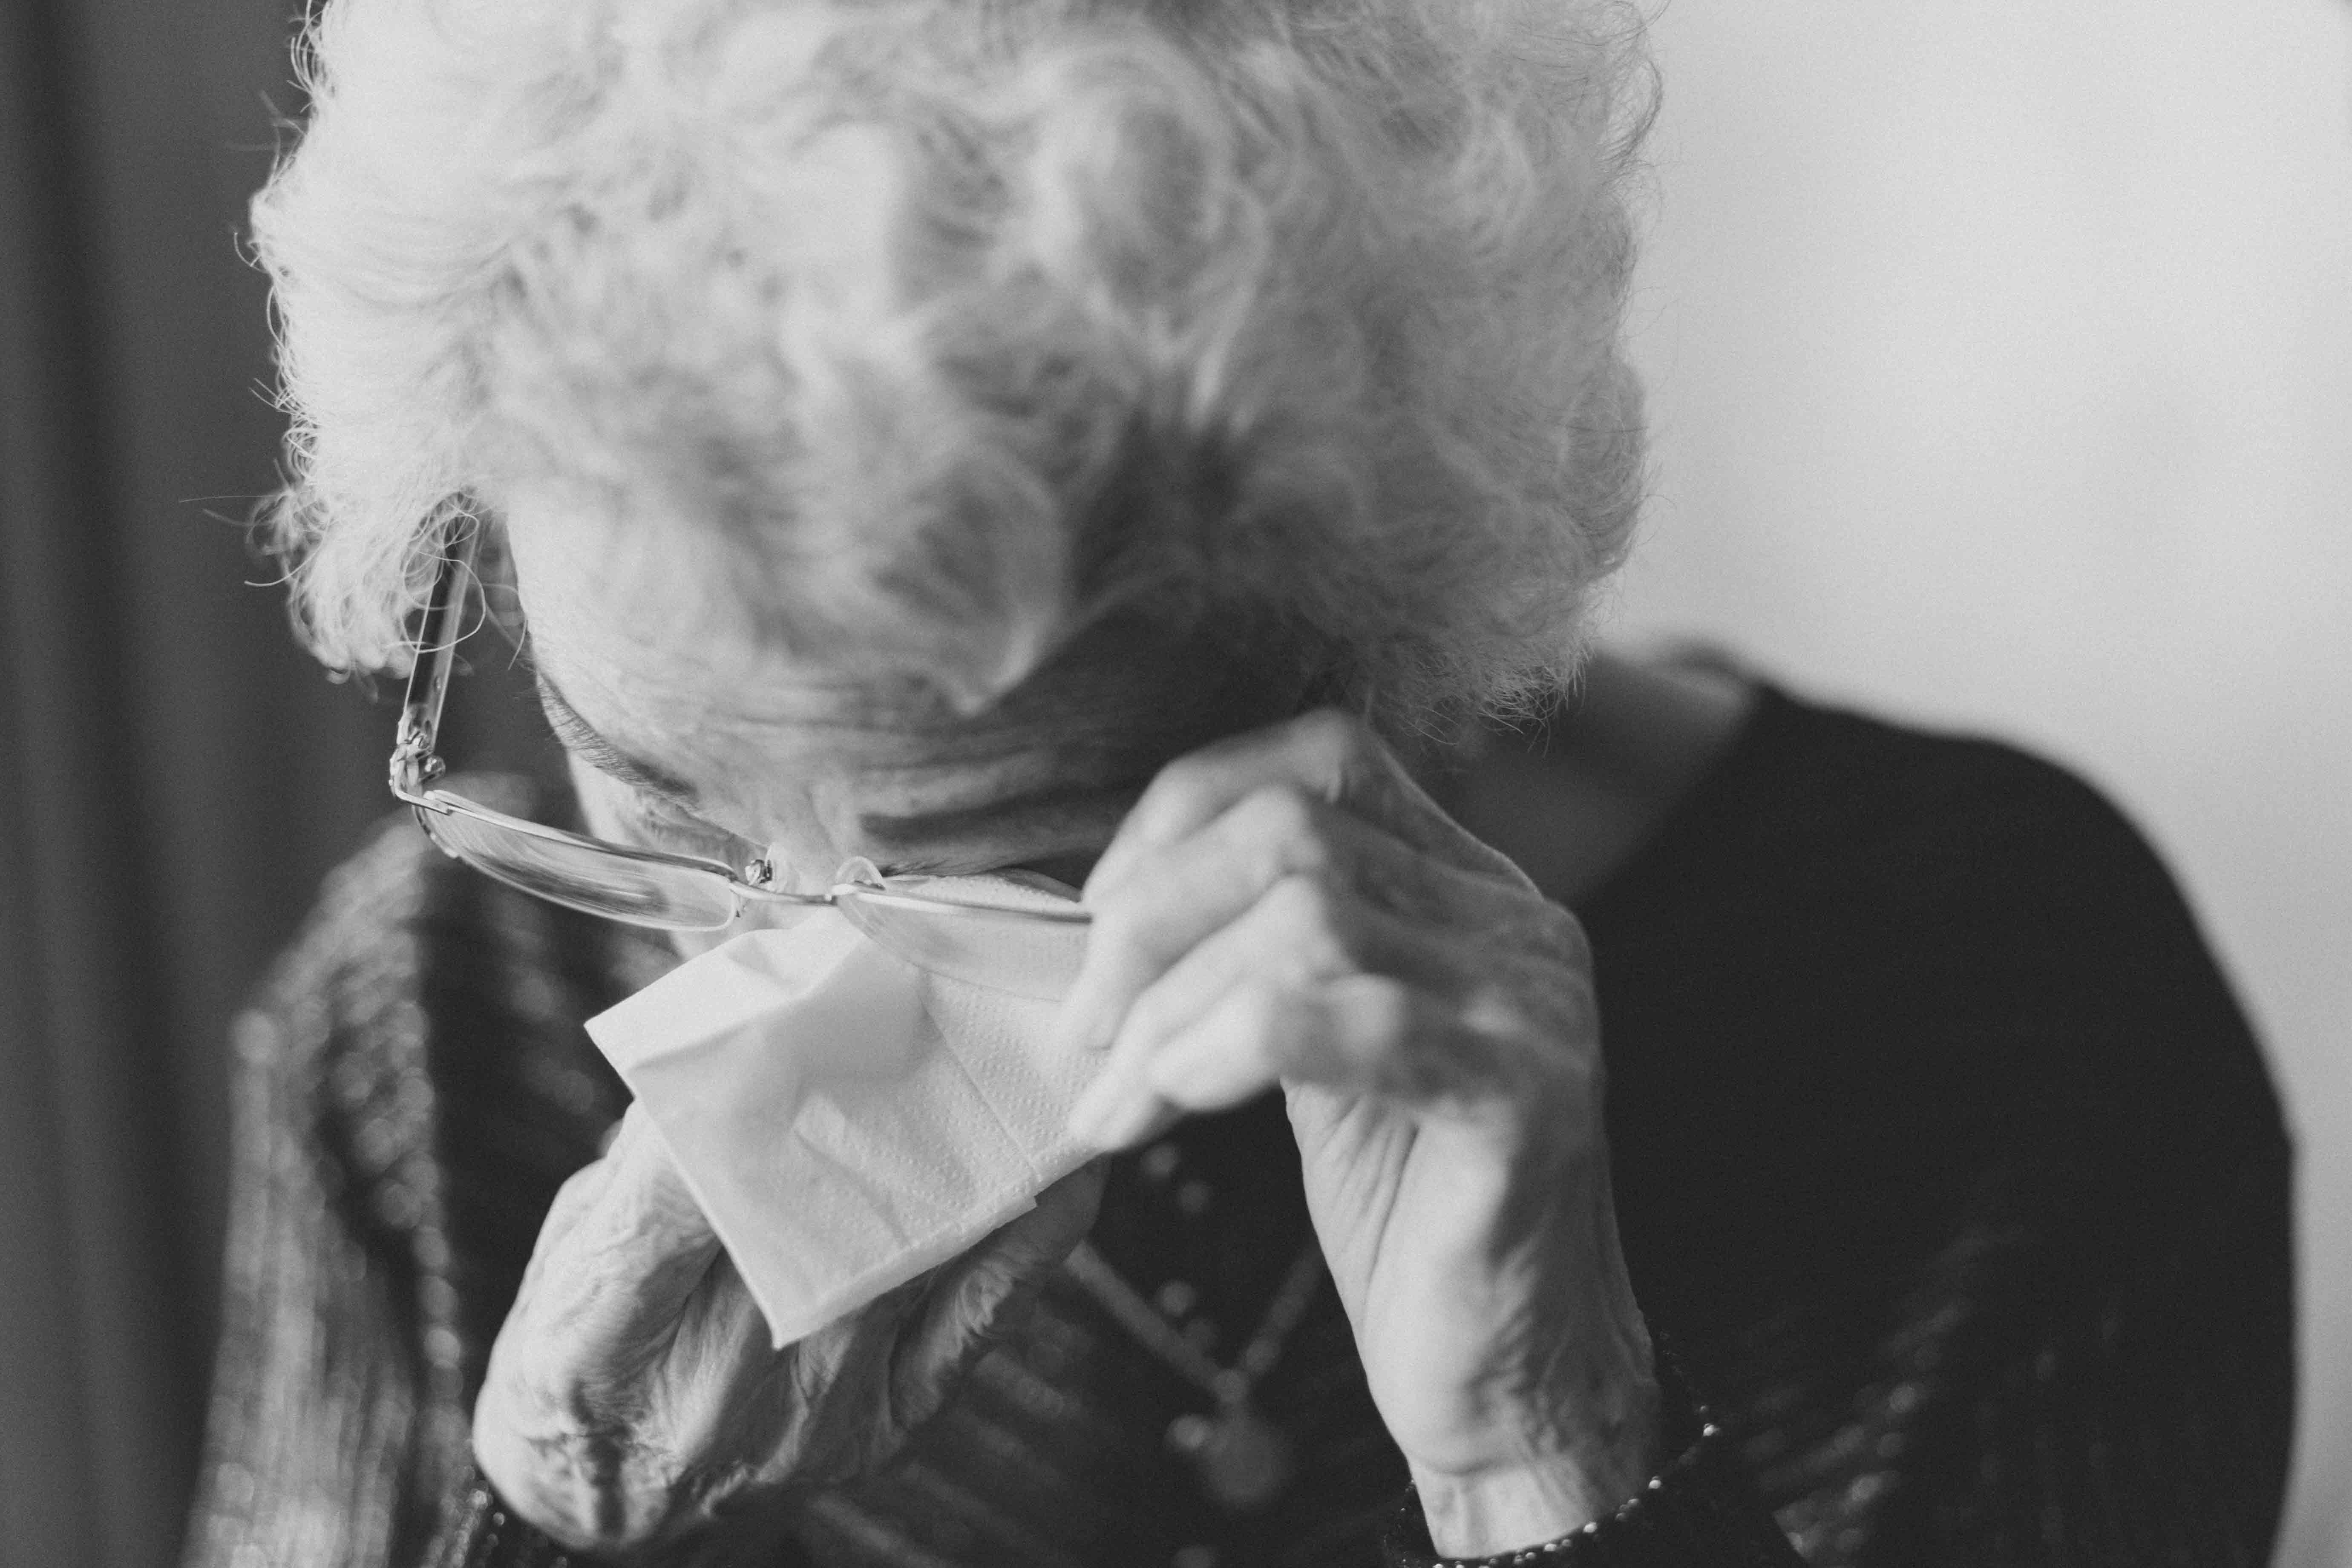 Old lady removing her spectacles to wipe her eye in black and white.